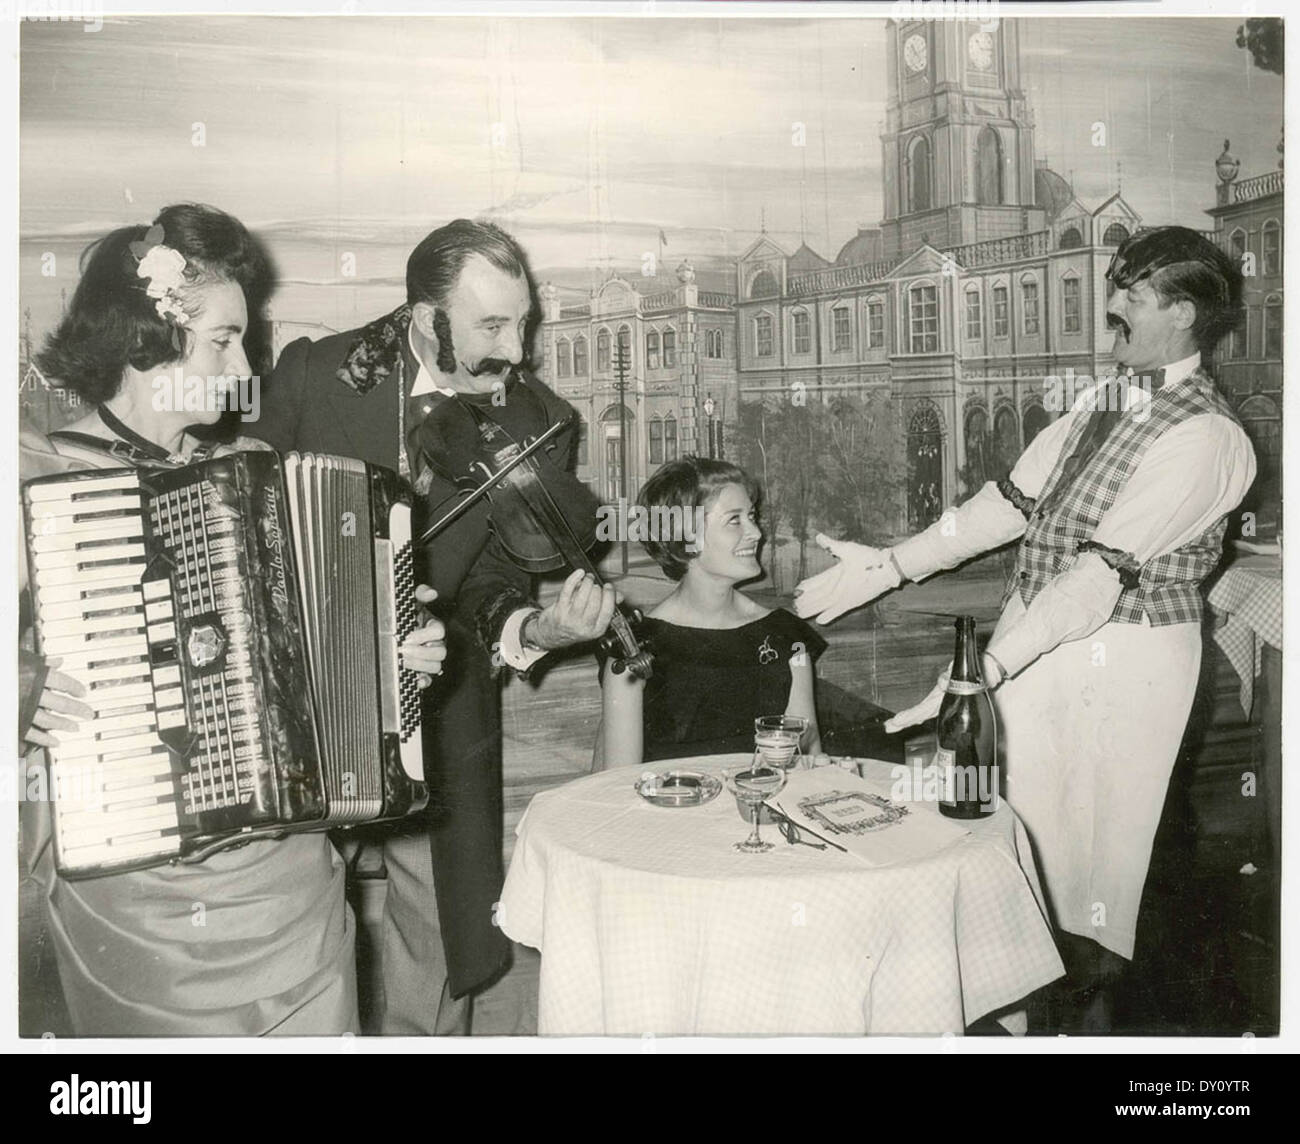 Elizabeth Connelly, TWA air hostess froom New York serenaded by head waiter with Mr & Mrs George Miller playing the violin and accordion respectively, Music Hall Restaurant, Apr 1965 - Stock Image